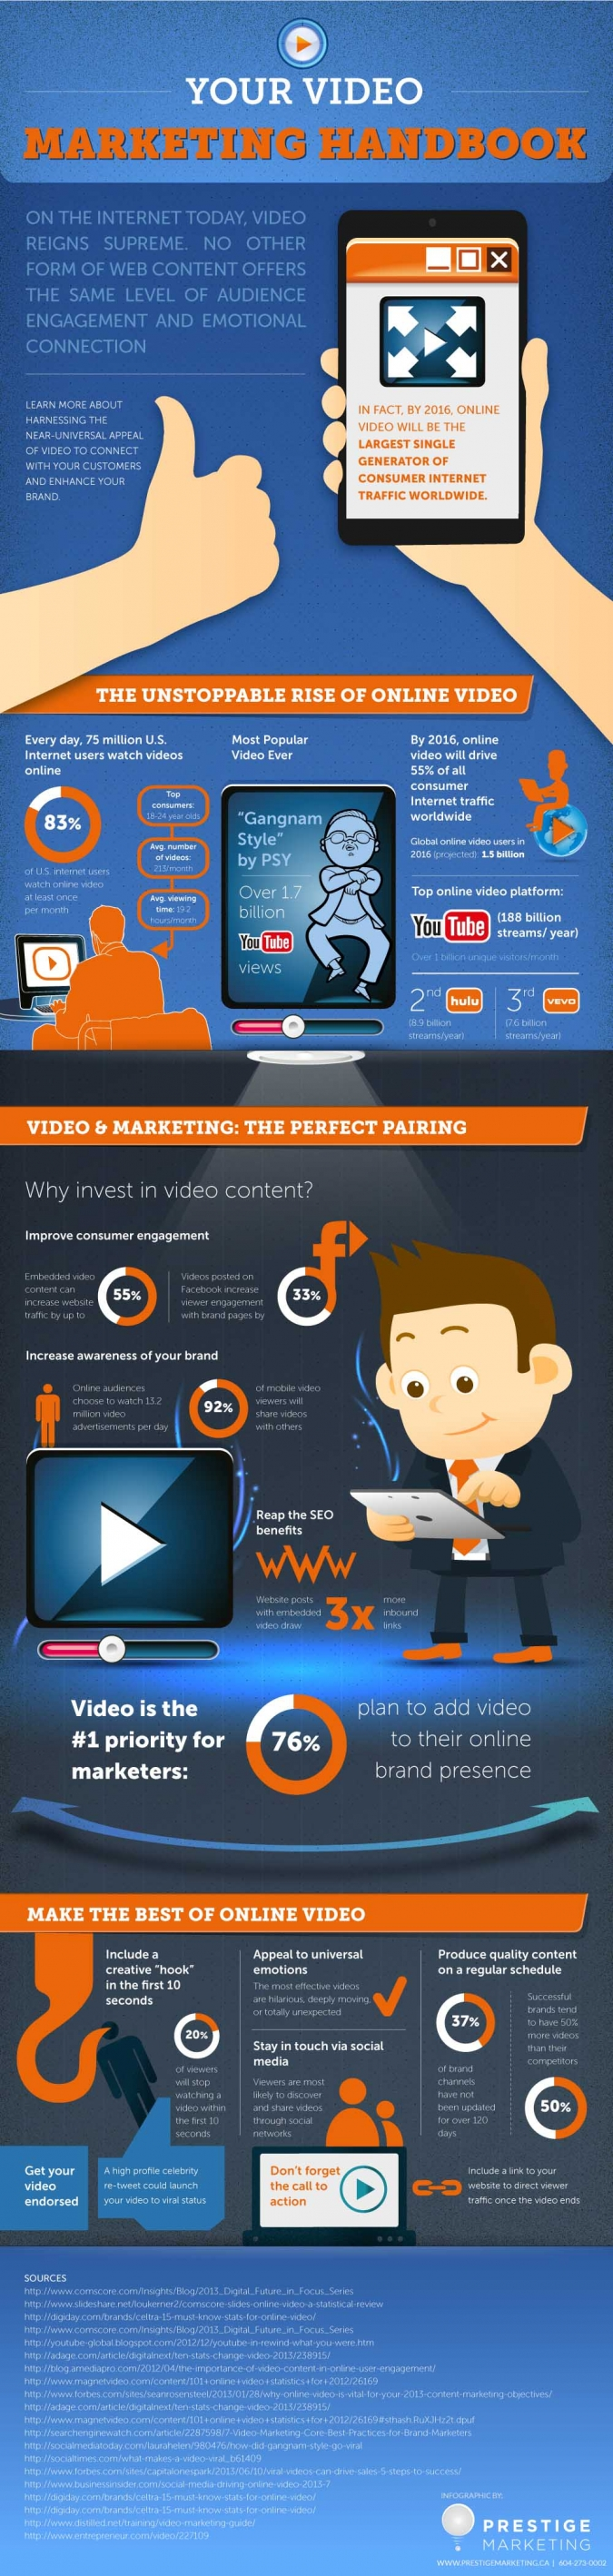 Die Infografik für Video Marketing und Online Video